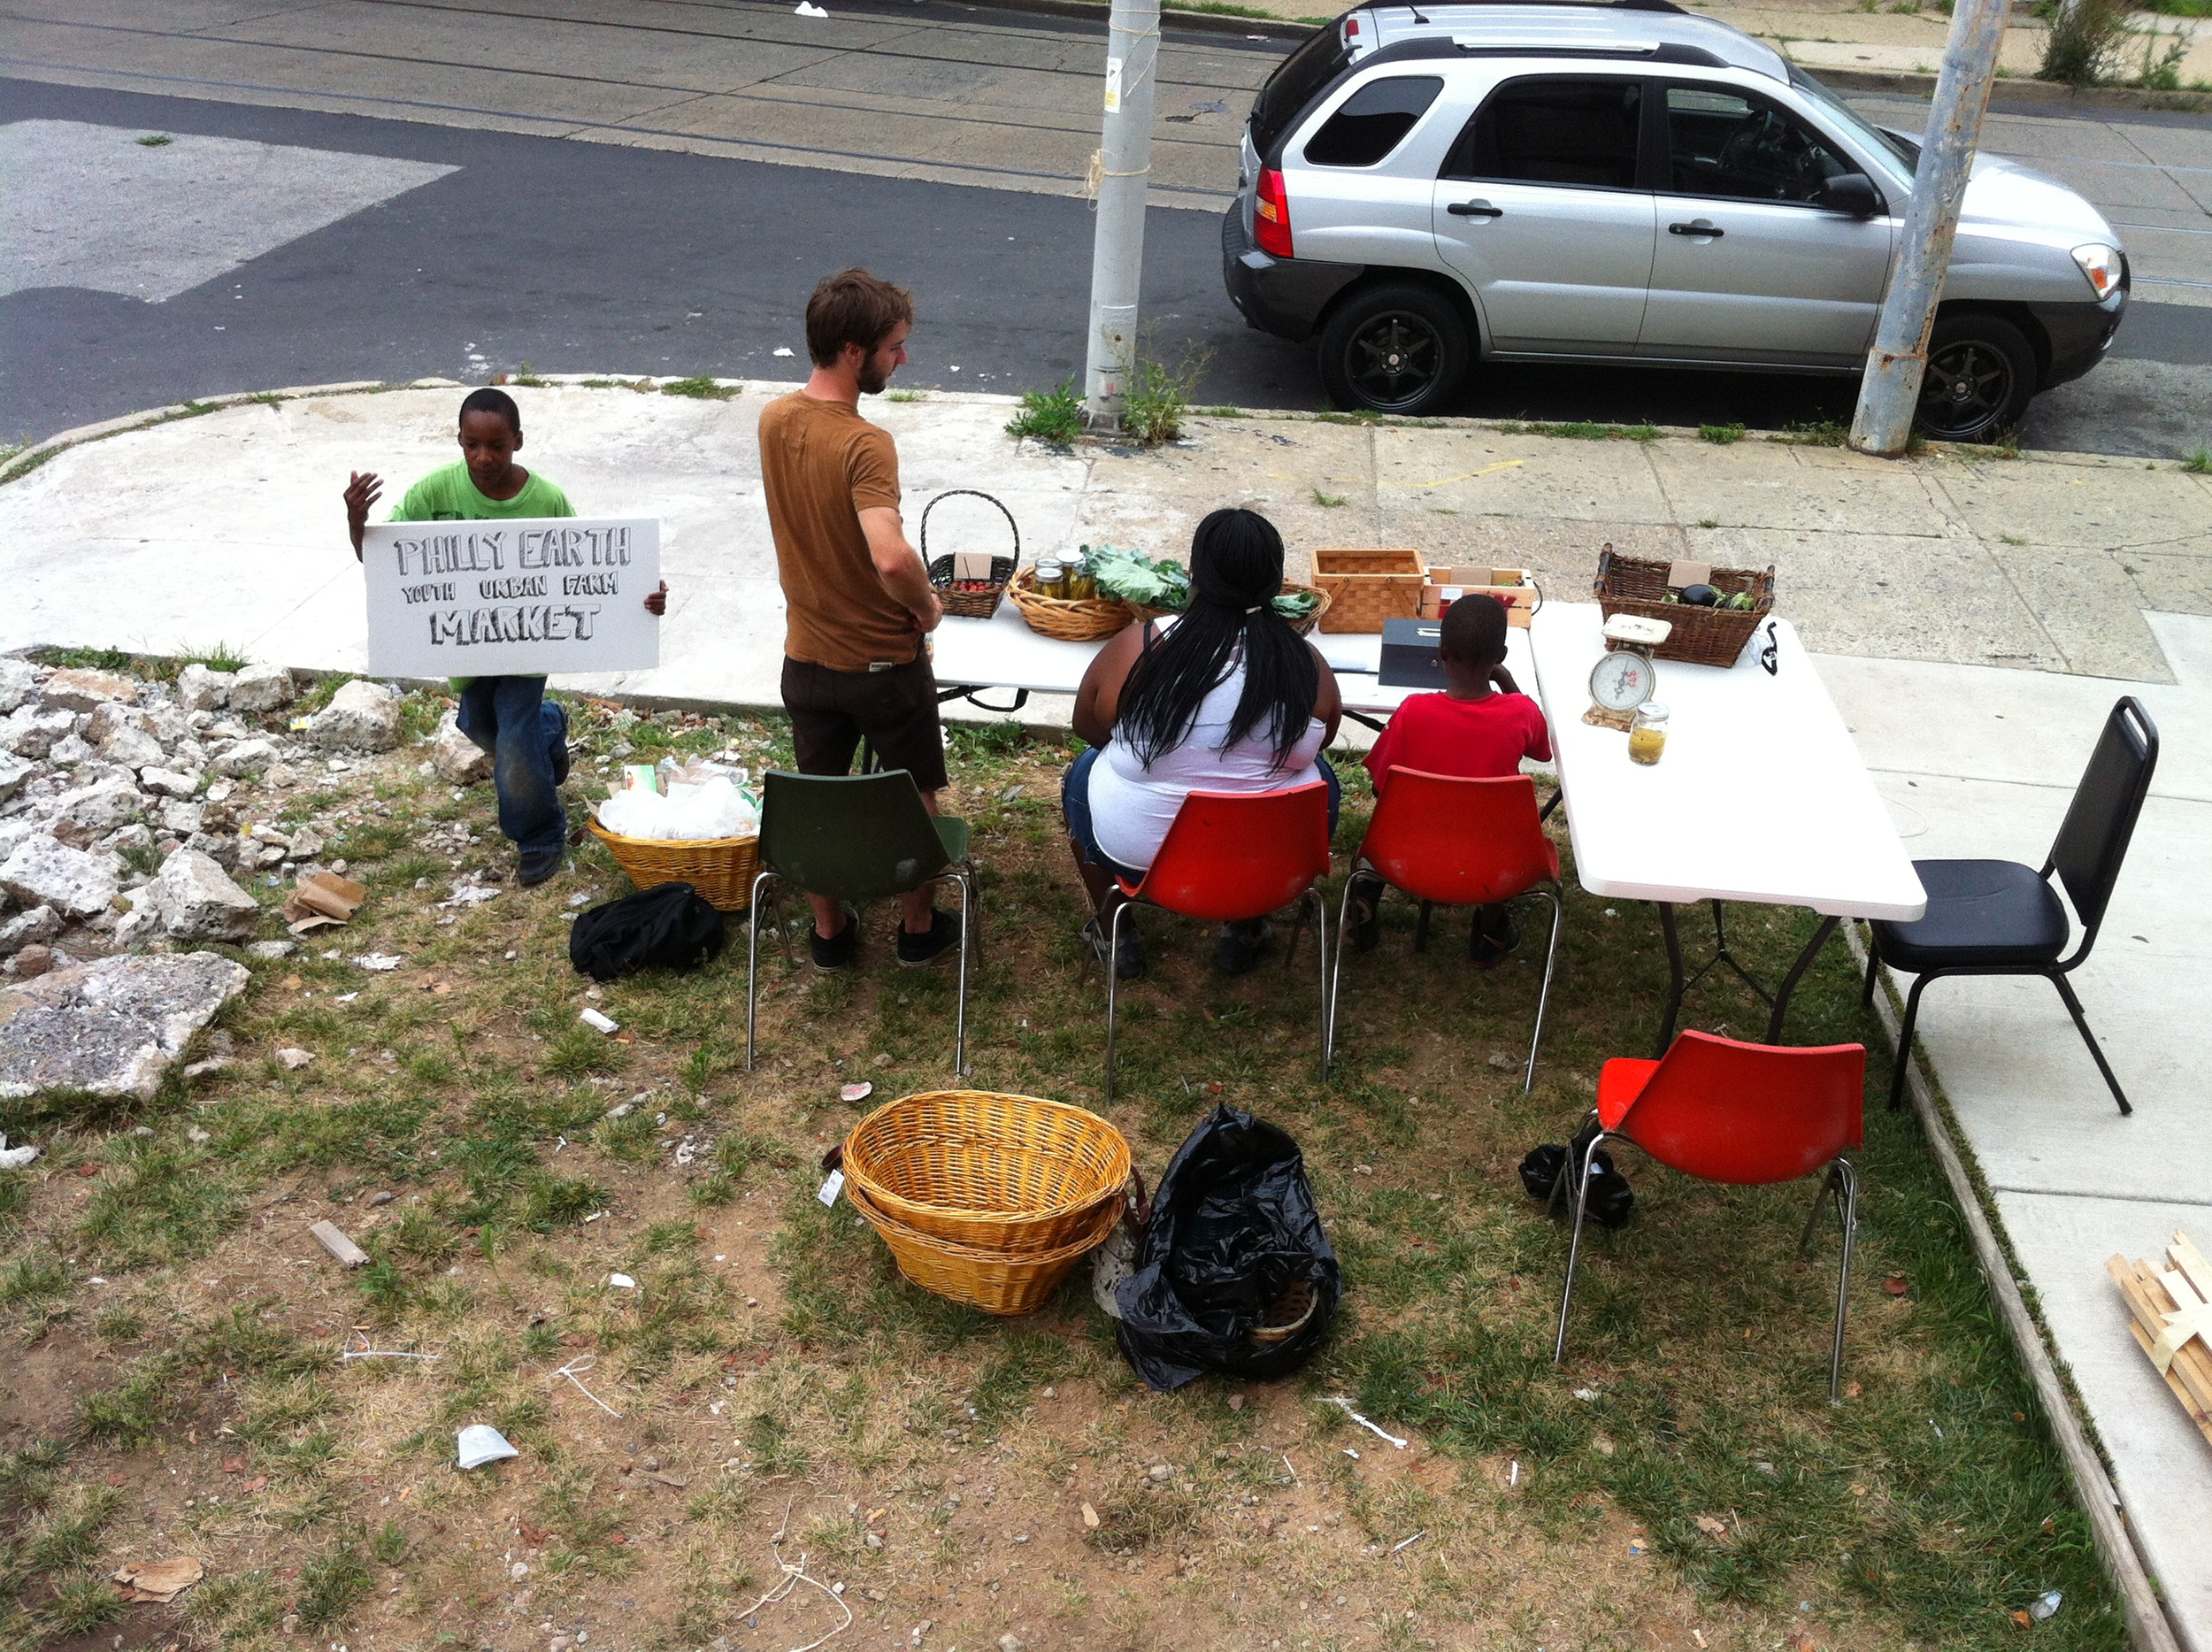 Philly Earth'smakeshift farm stand.